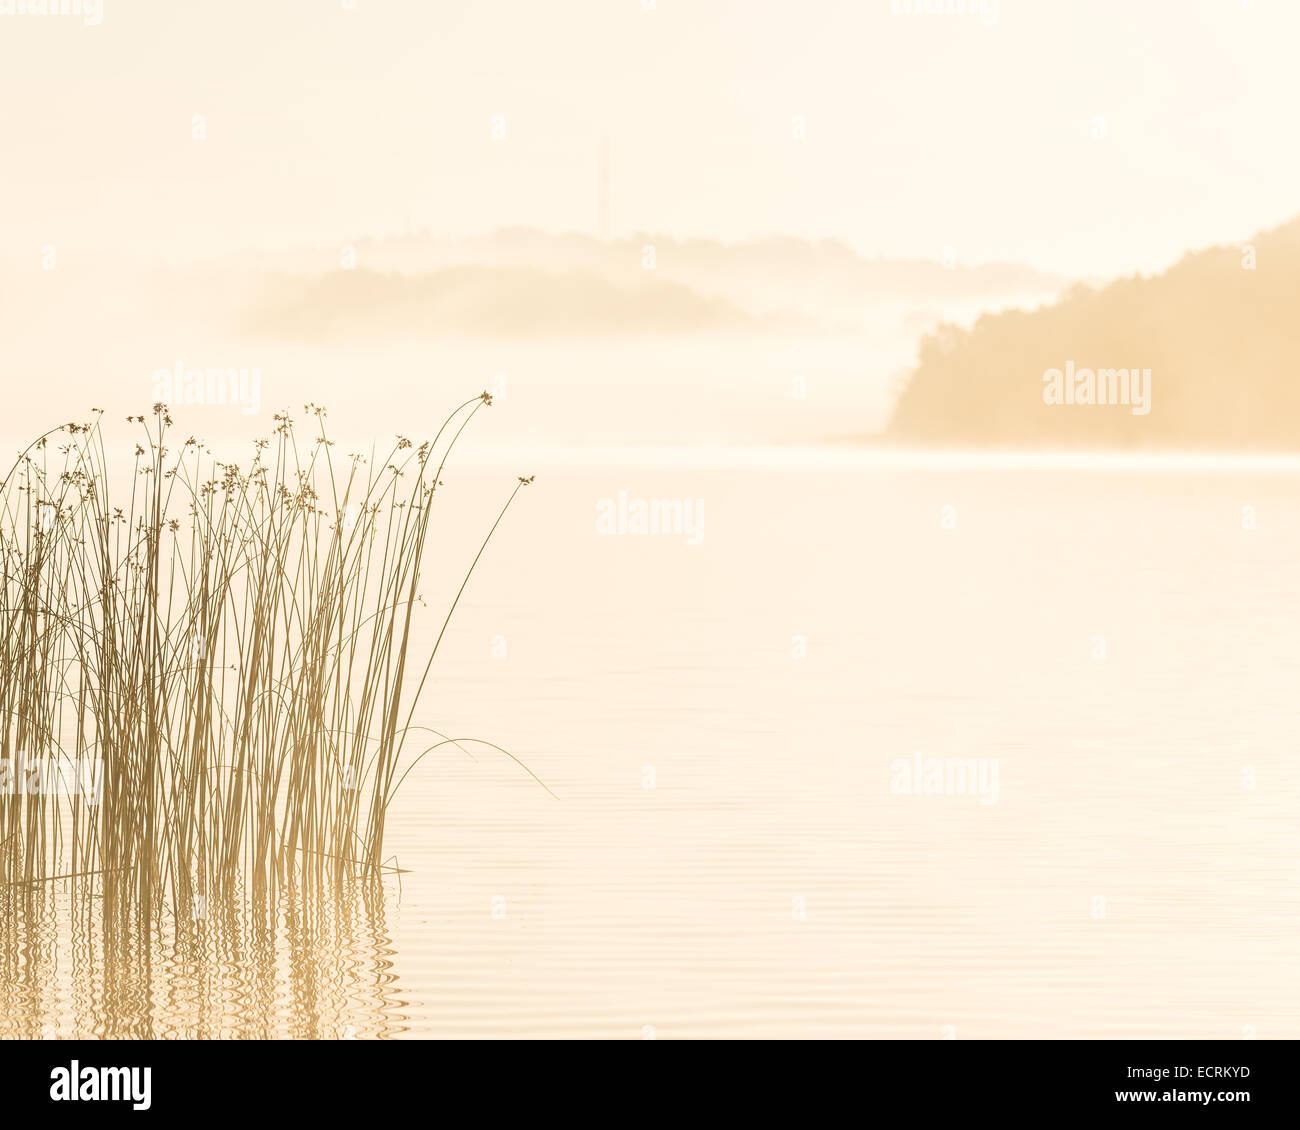 Tall grass growing on a riverbank on a foggy day - Stock Image